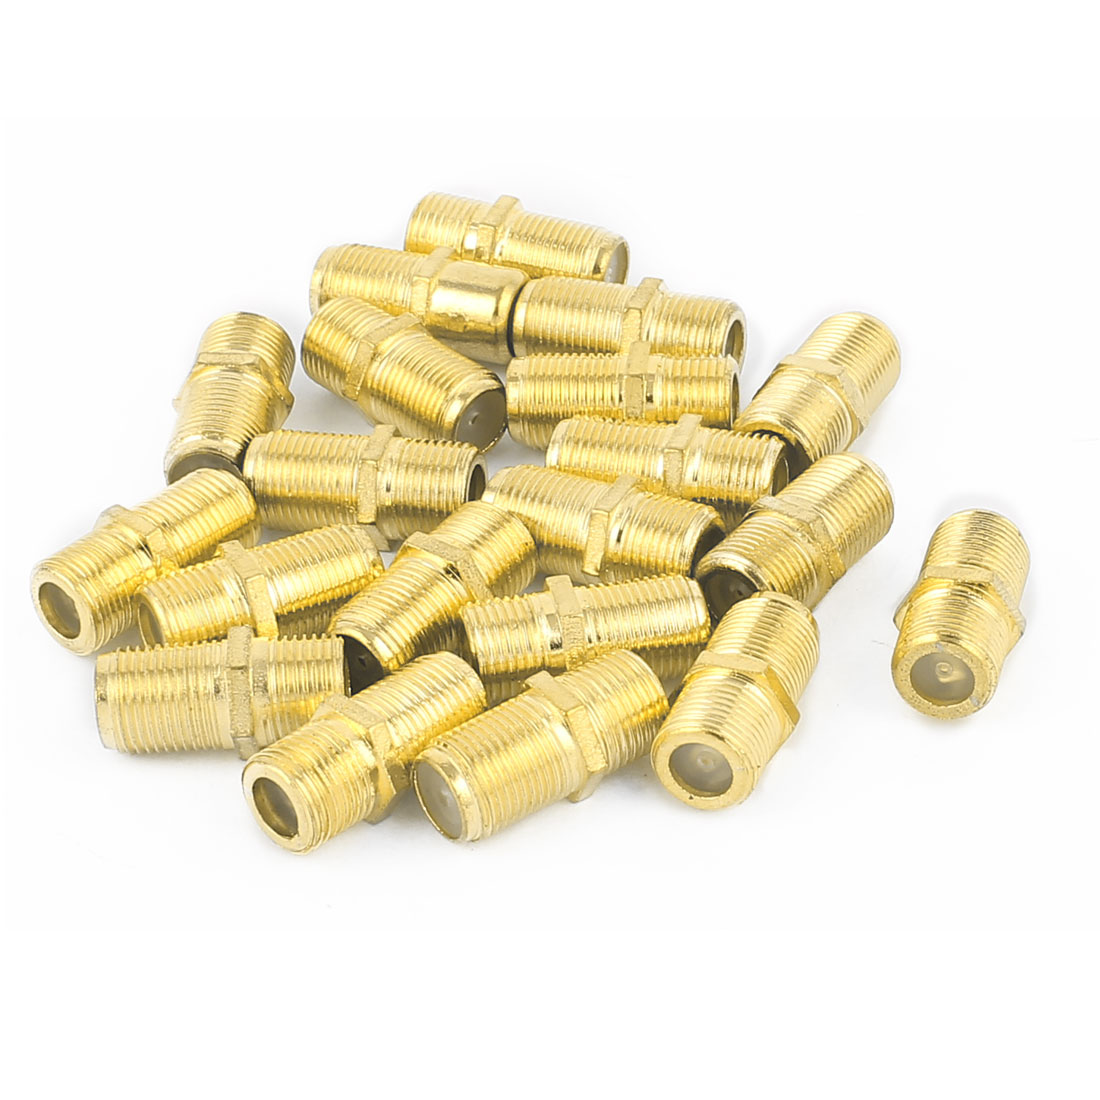 20Pcs Gold Plated F Type Female to Female Straight RF Coax TV Adapter Connectors